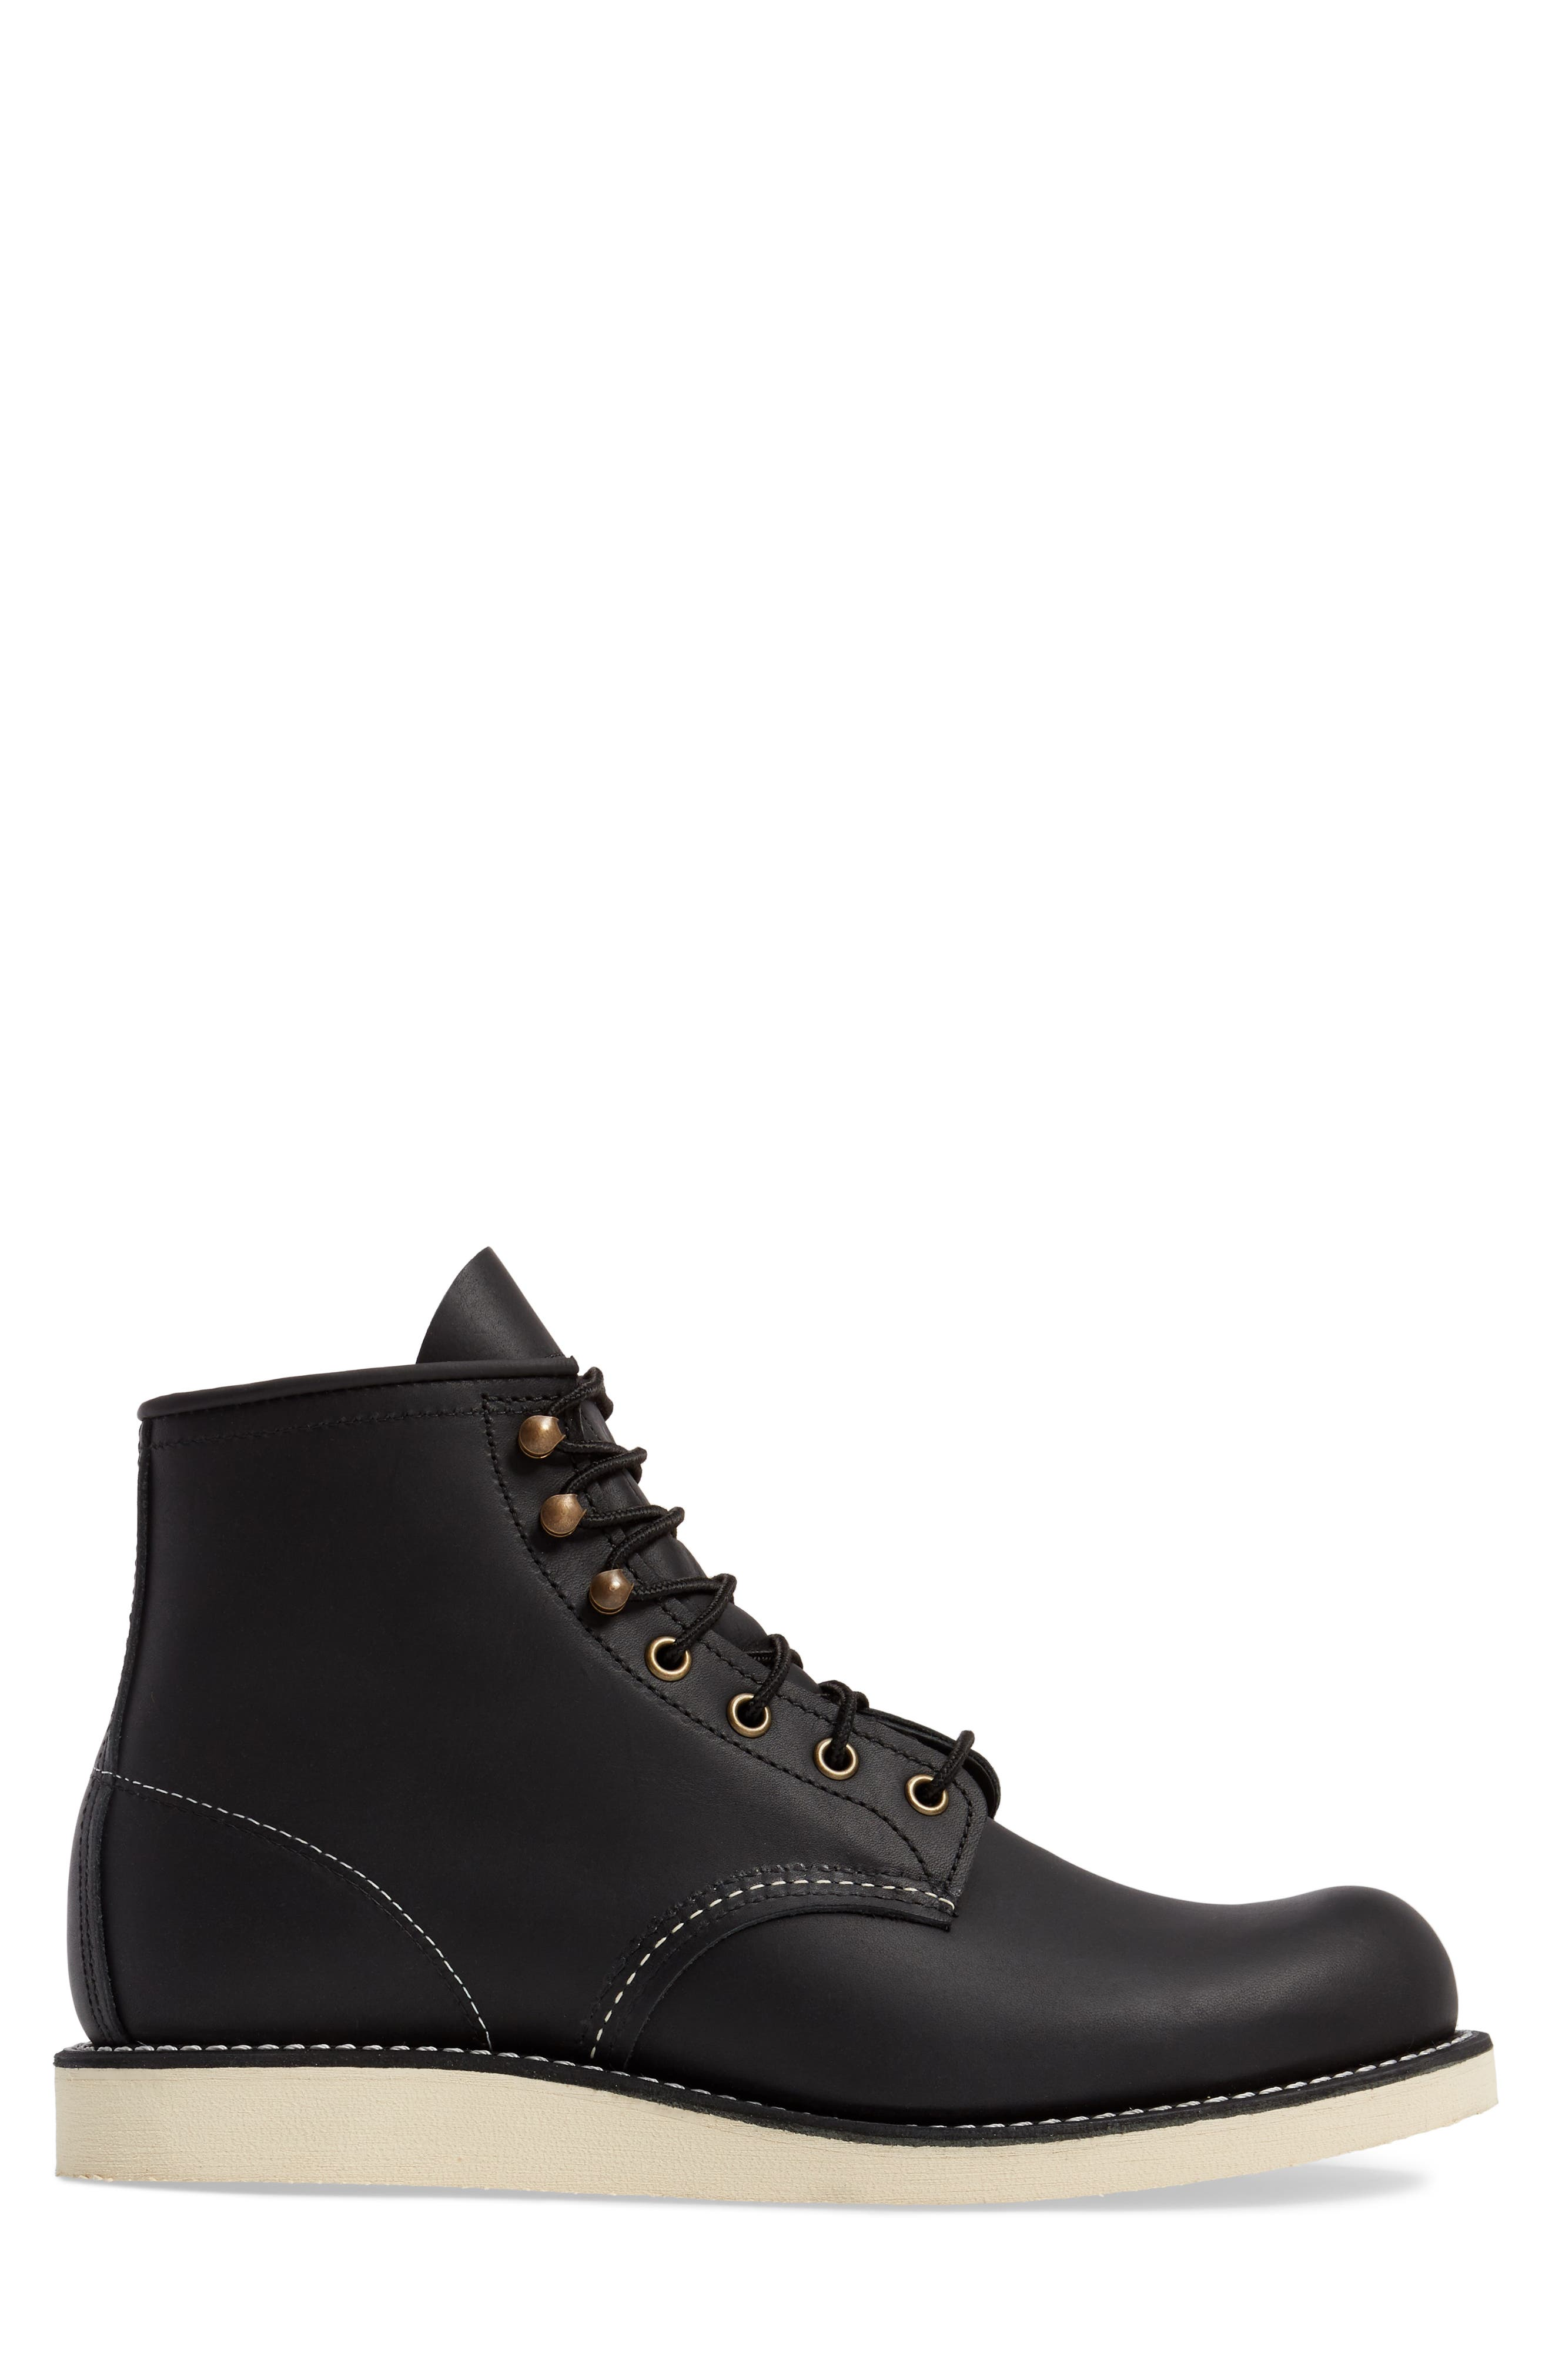 RED WING, Rover Plain Toe Boot, Alternate thumbnail 3, color, BLACK HARNESS LEATHER